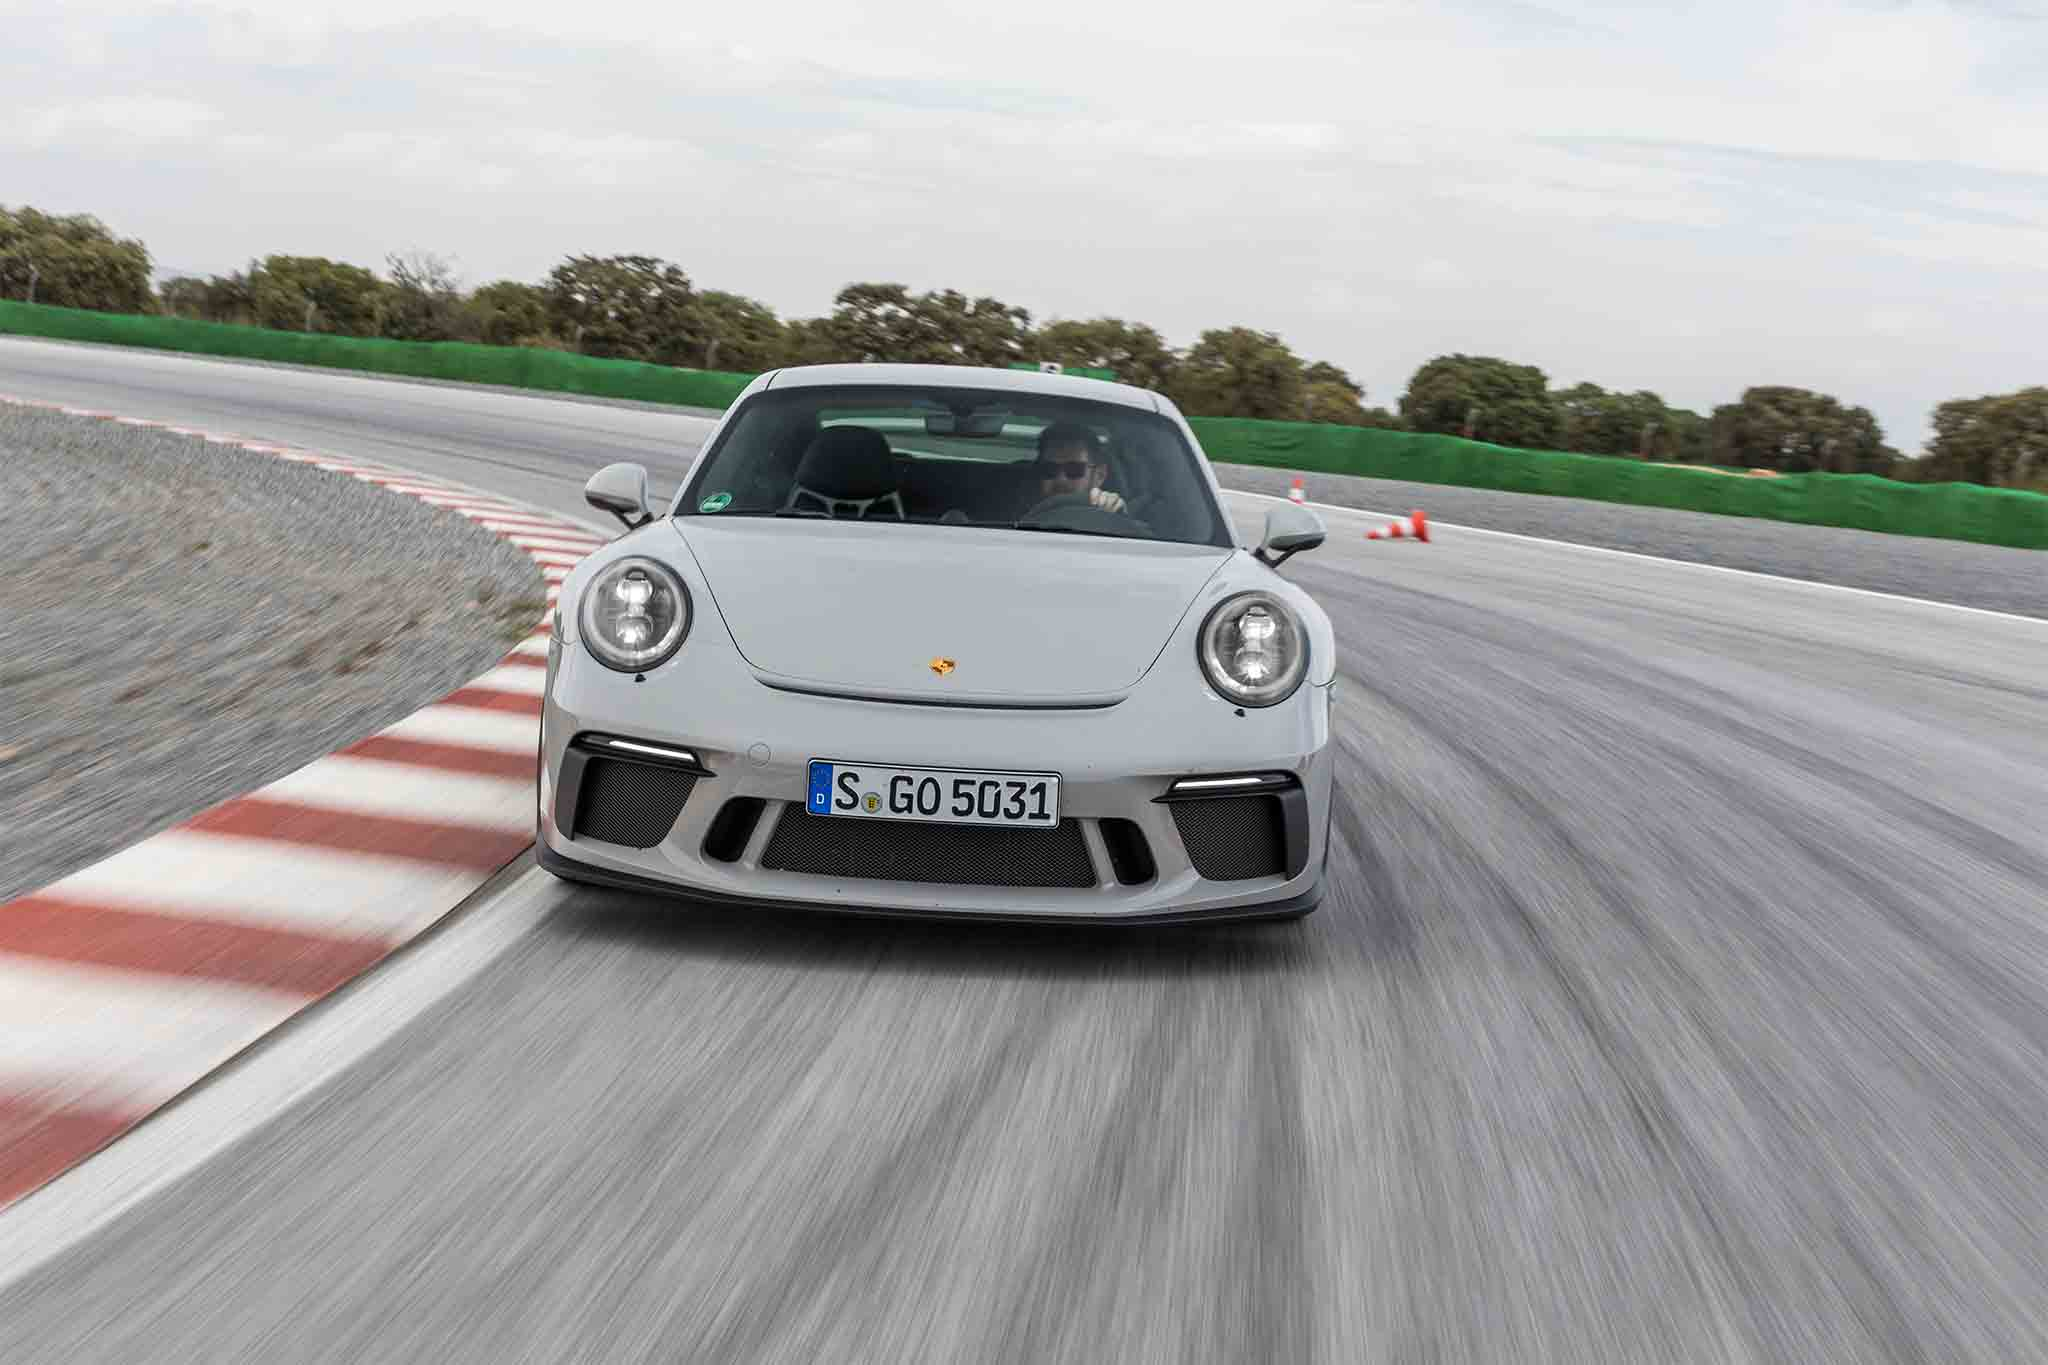 2018-Porsche-911-GT3-front-view-in-motion-03 Interesting Porsche 911 Gt2 and Gt3 Cars Trend